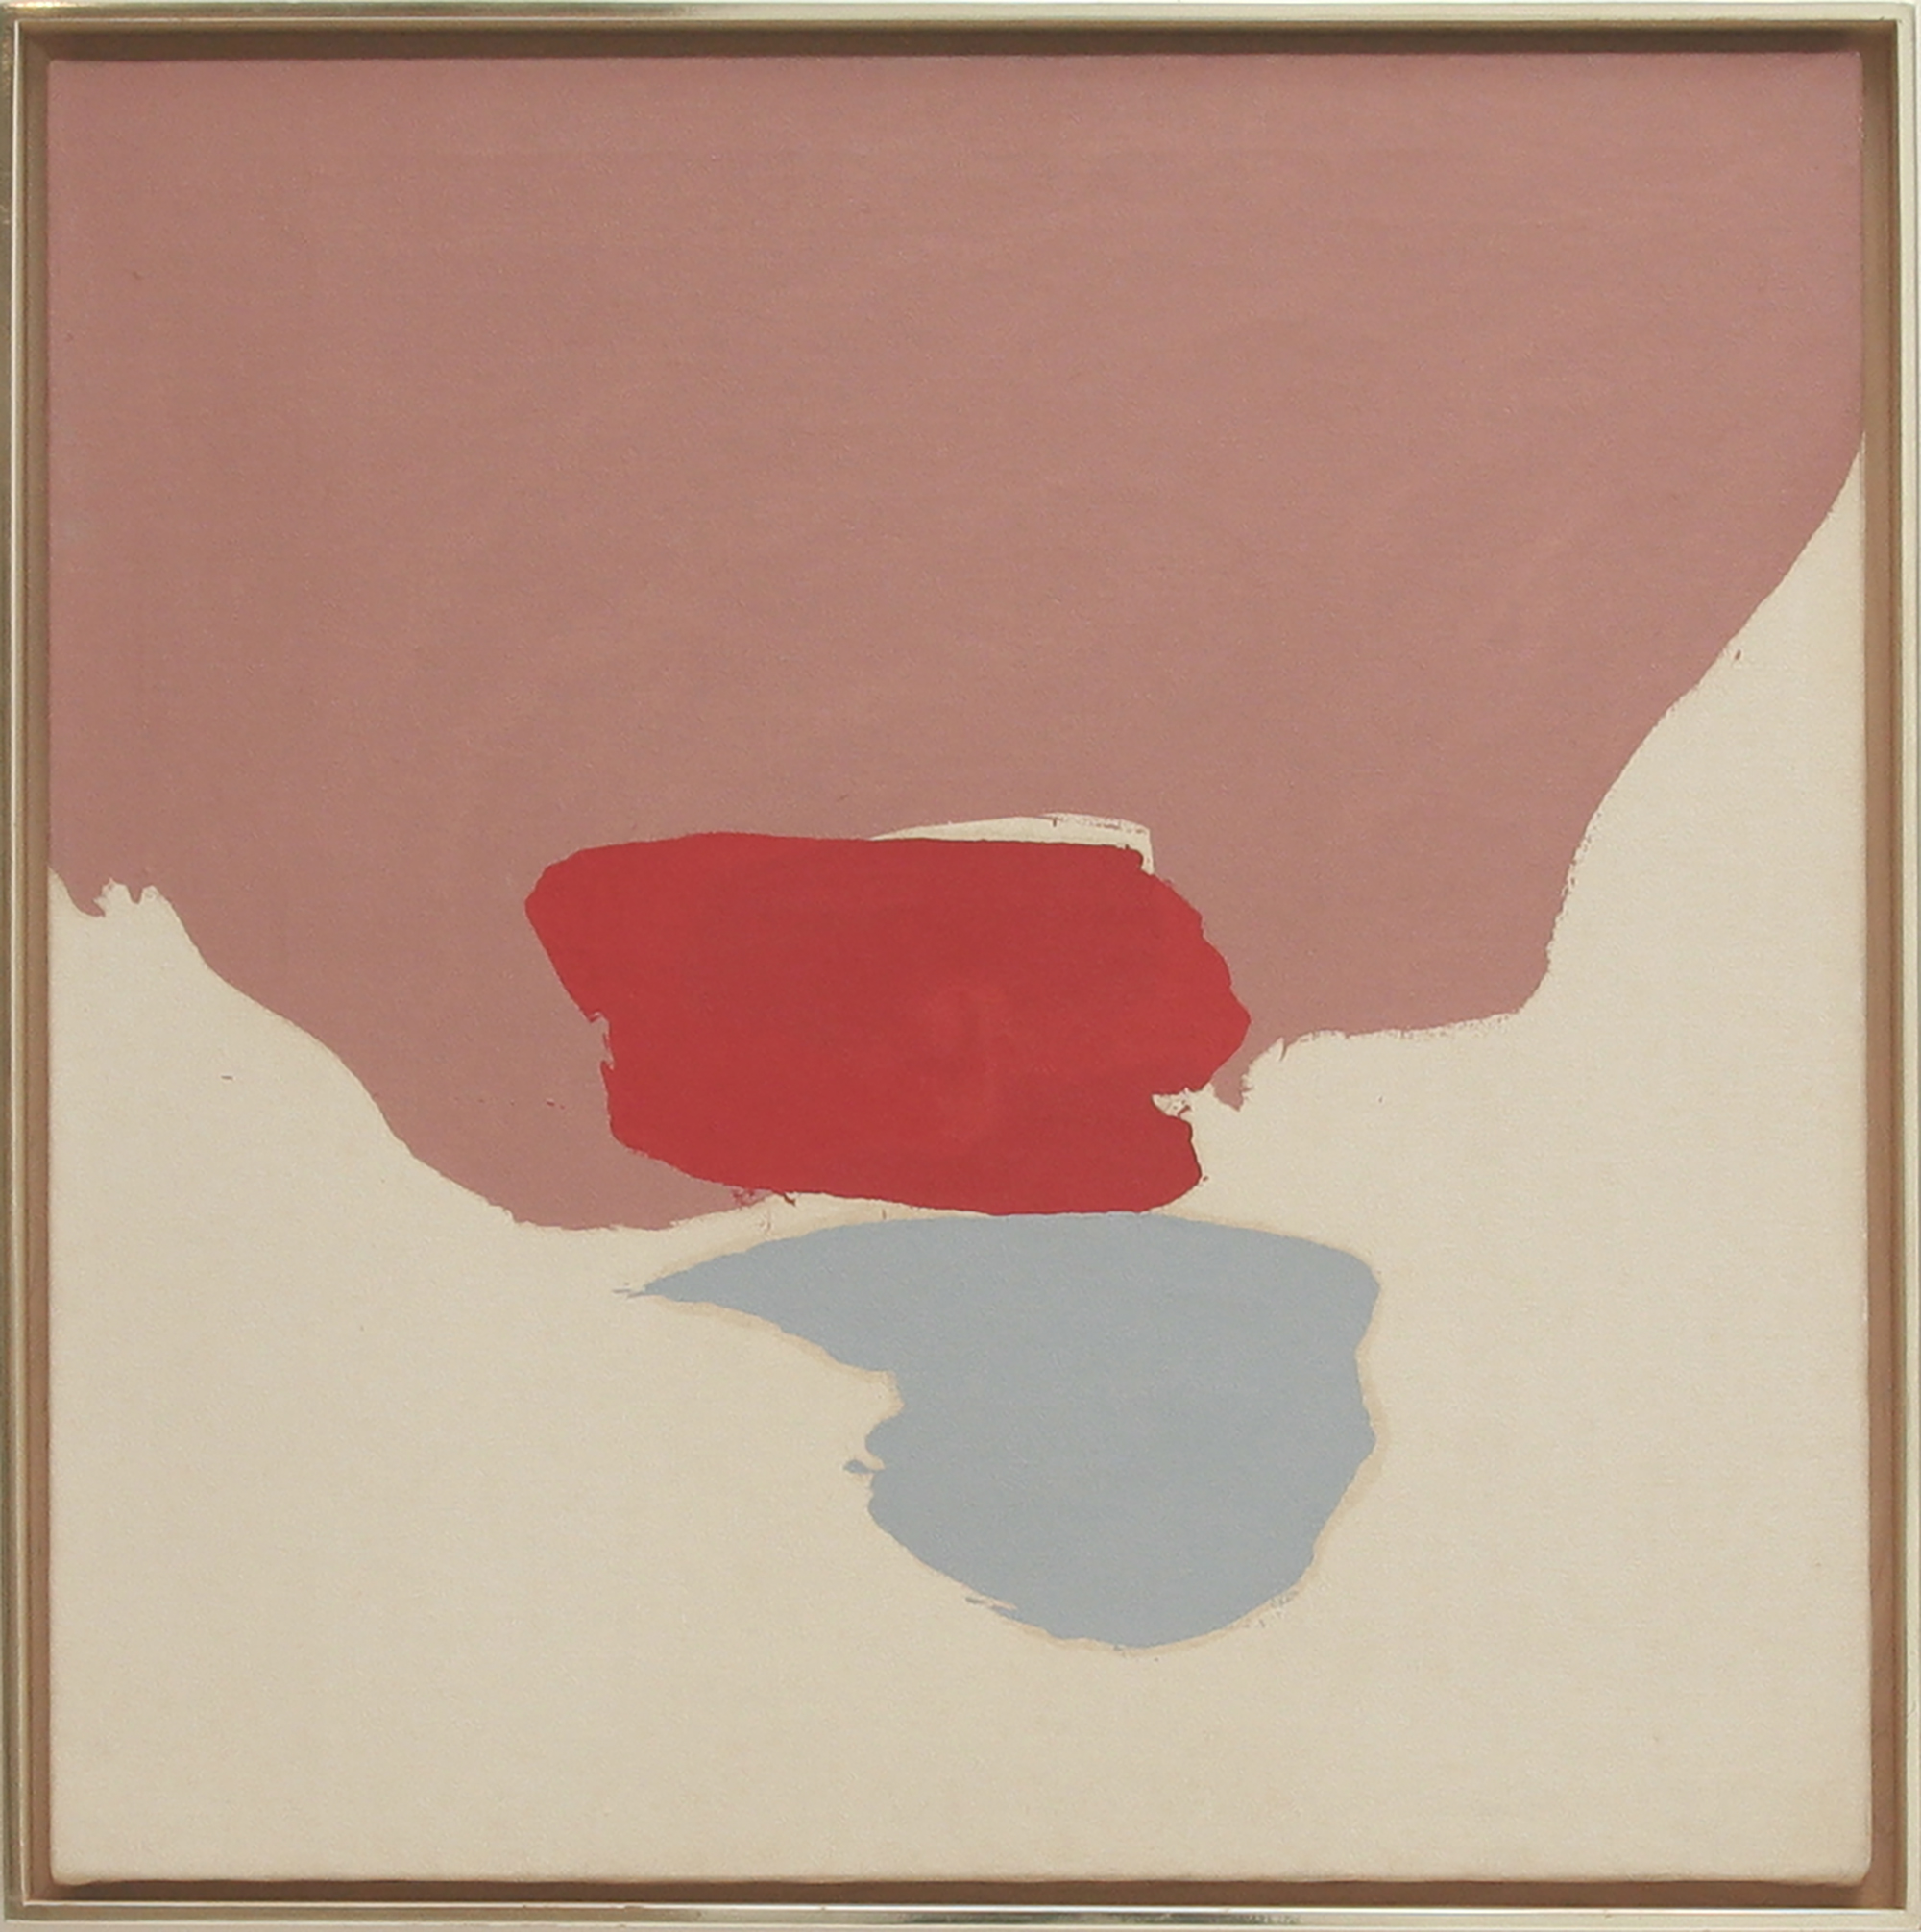 SOLD   Untitled, 1963 , acrylic on canvas, 29 x 29 1/2 inches